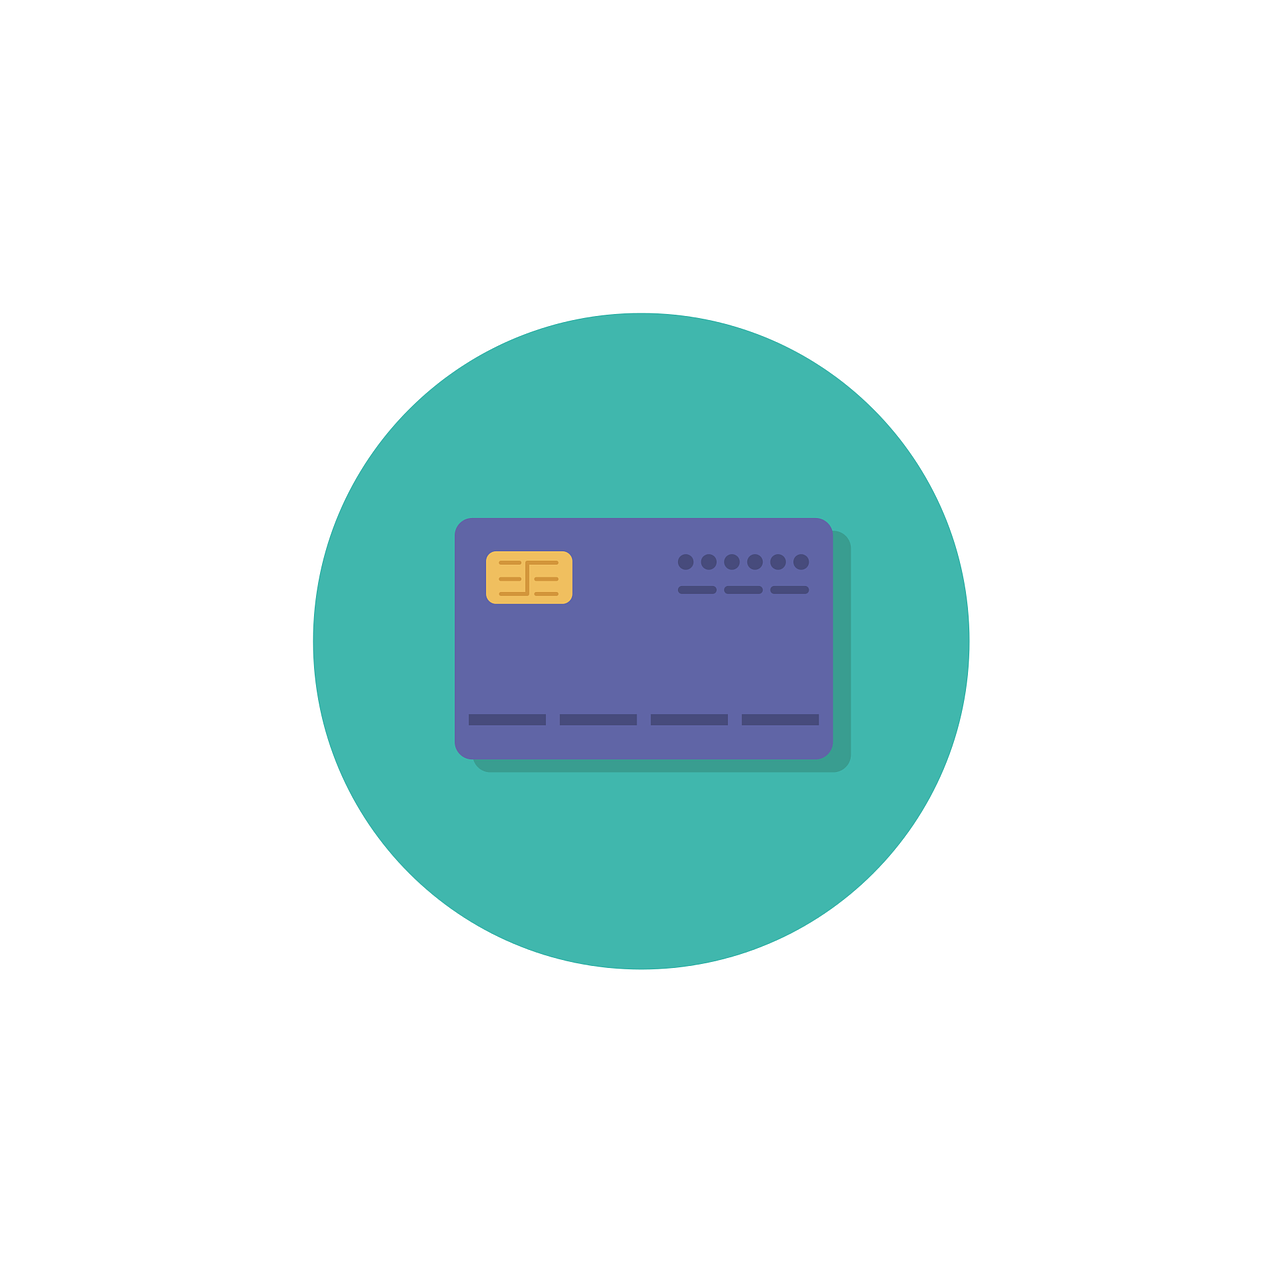 The Chase Sapphire Credit Card: A Victim of its own Success?